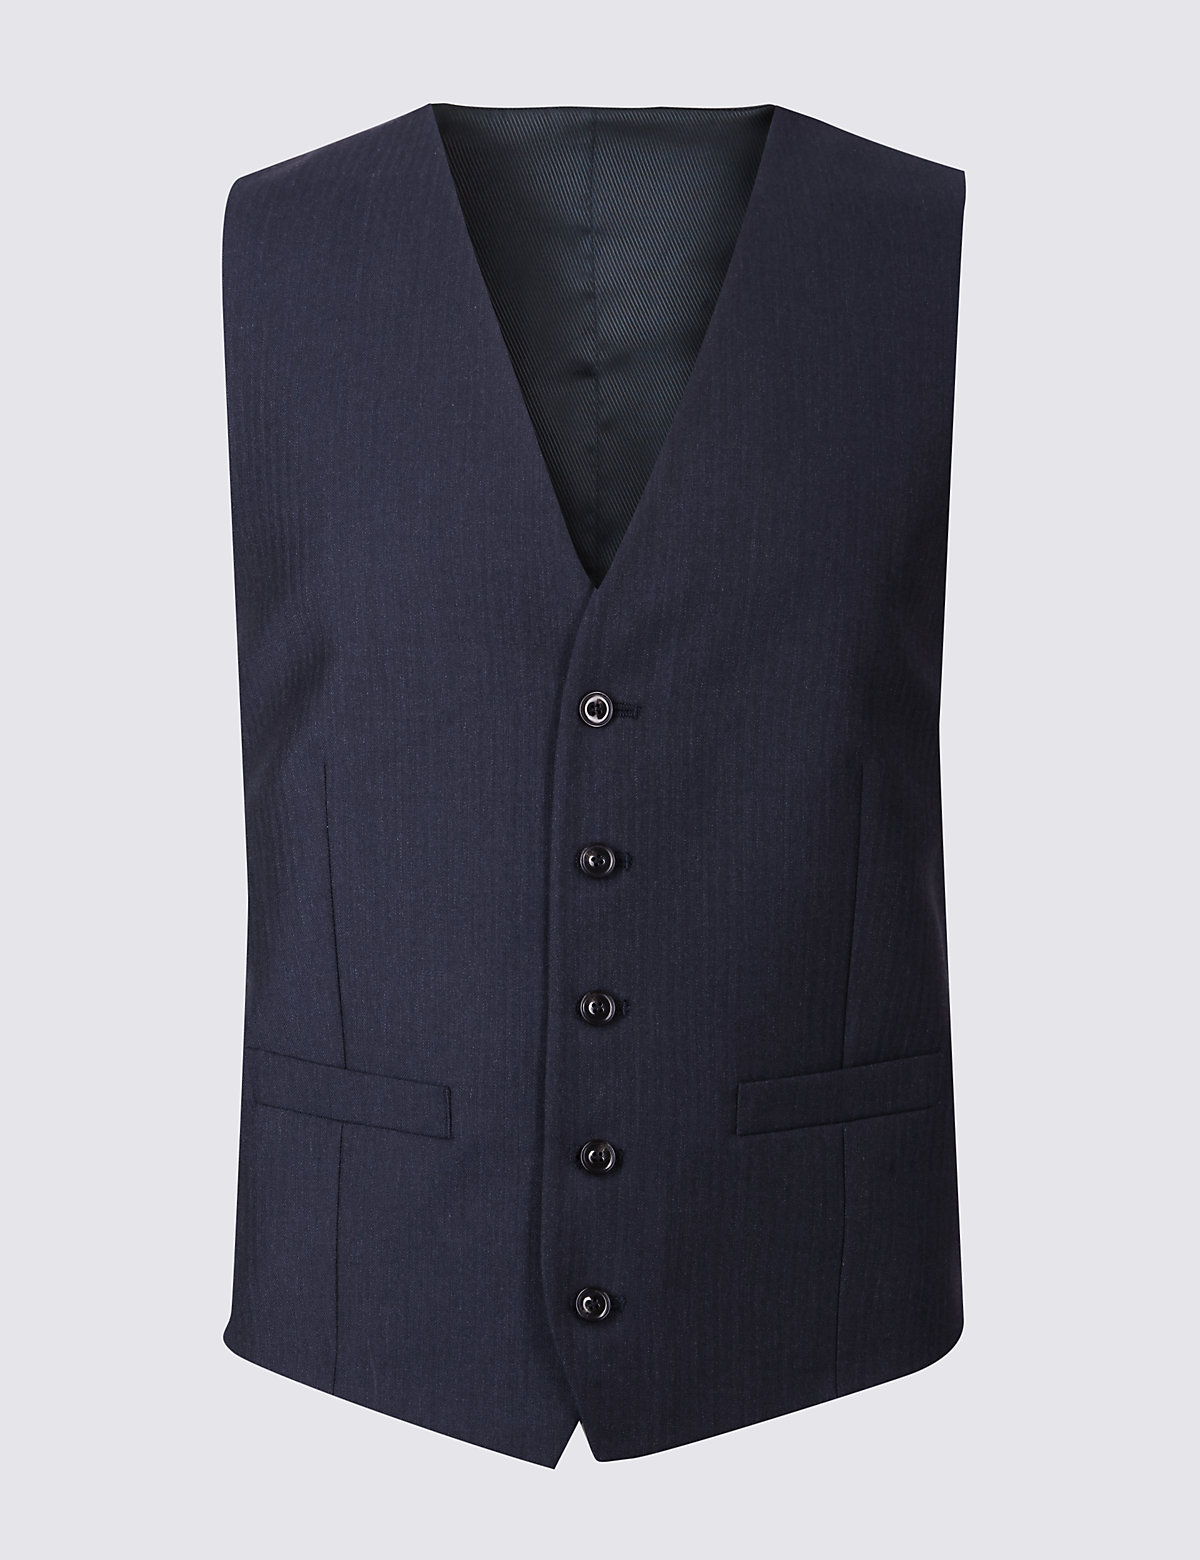 Marks & Spencer Navy Tailored Fit Wool Waistcoat